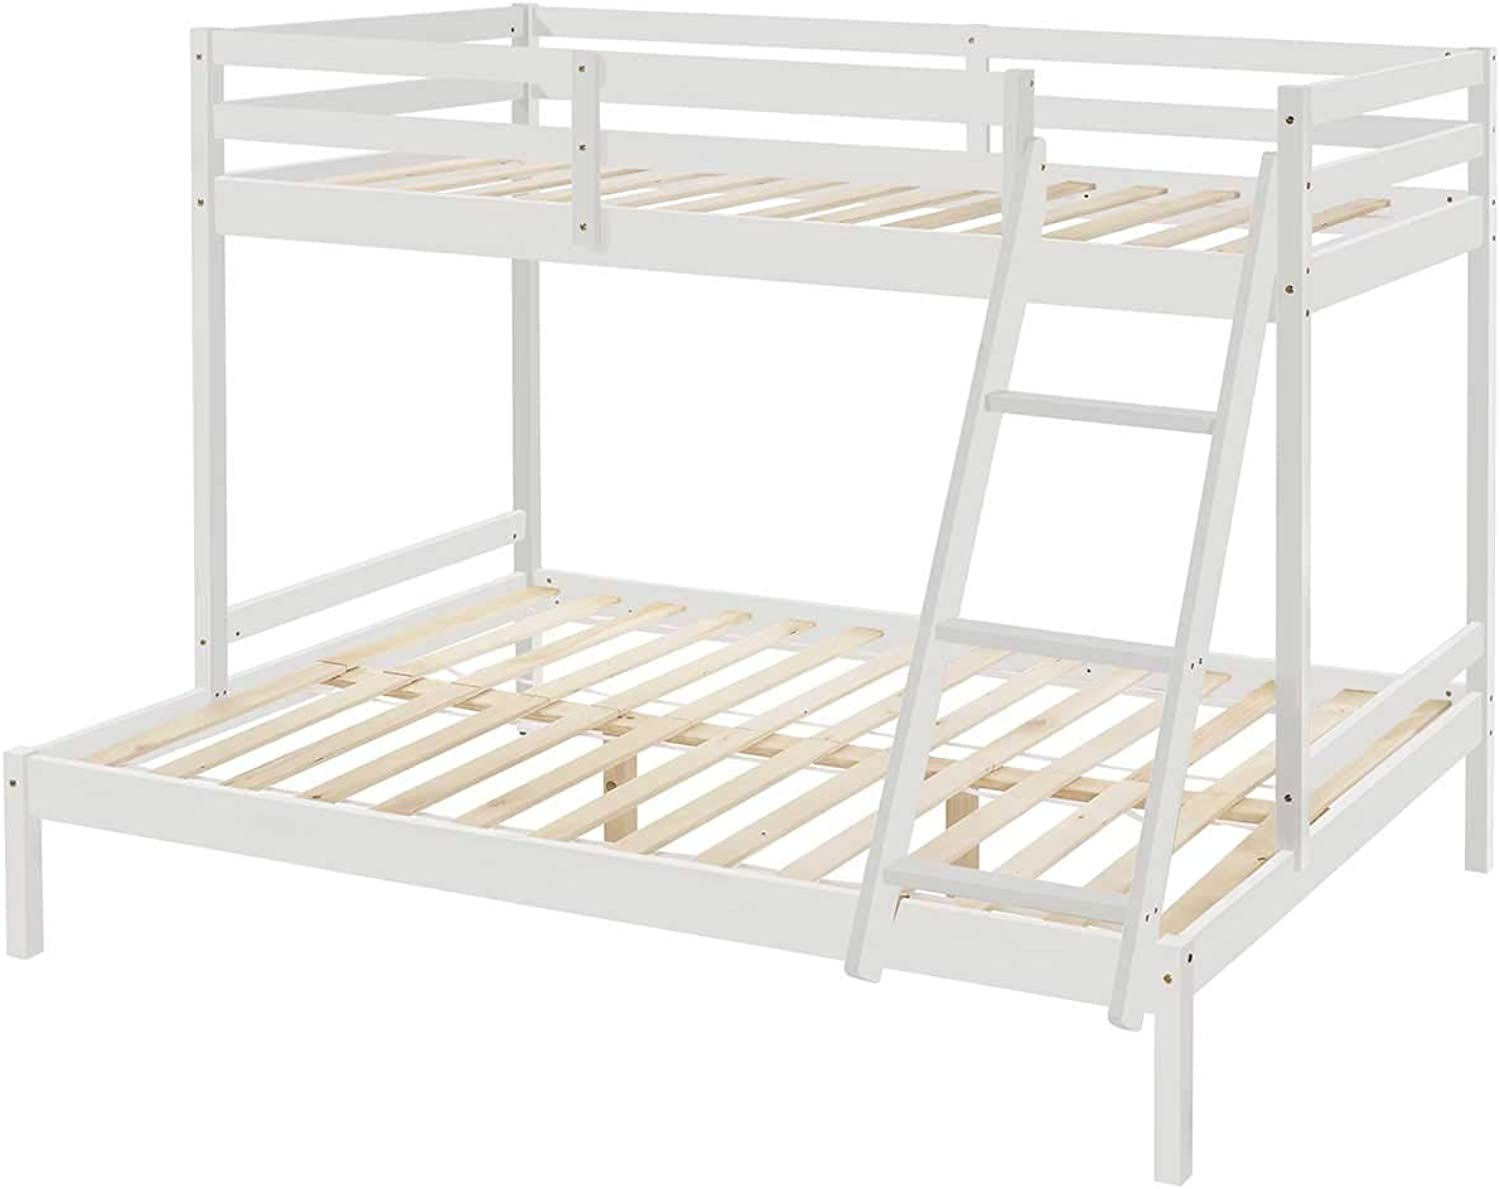 Astro Timber Wooden Triple Bunk Bed Frame Kids Single Over Double White